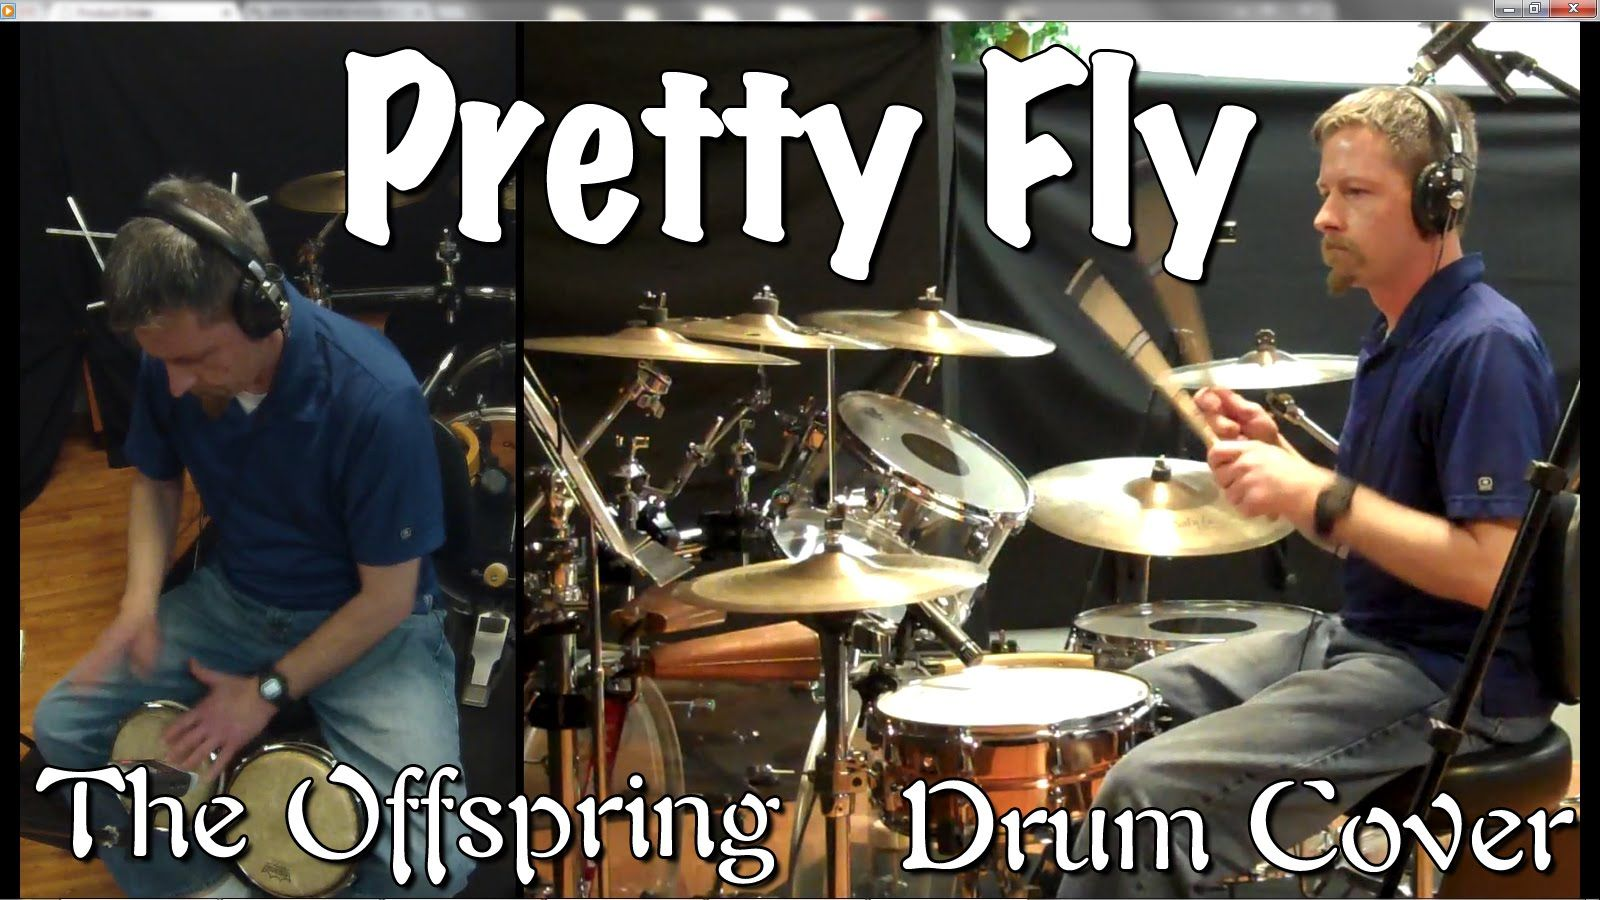 The Offspring - Pretty Fly Drum Cover with Bongos